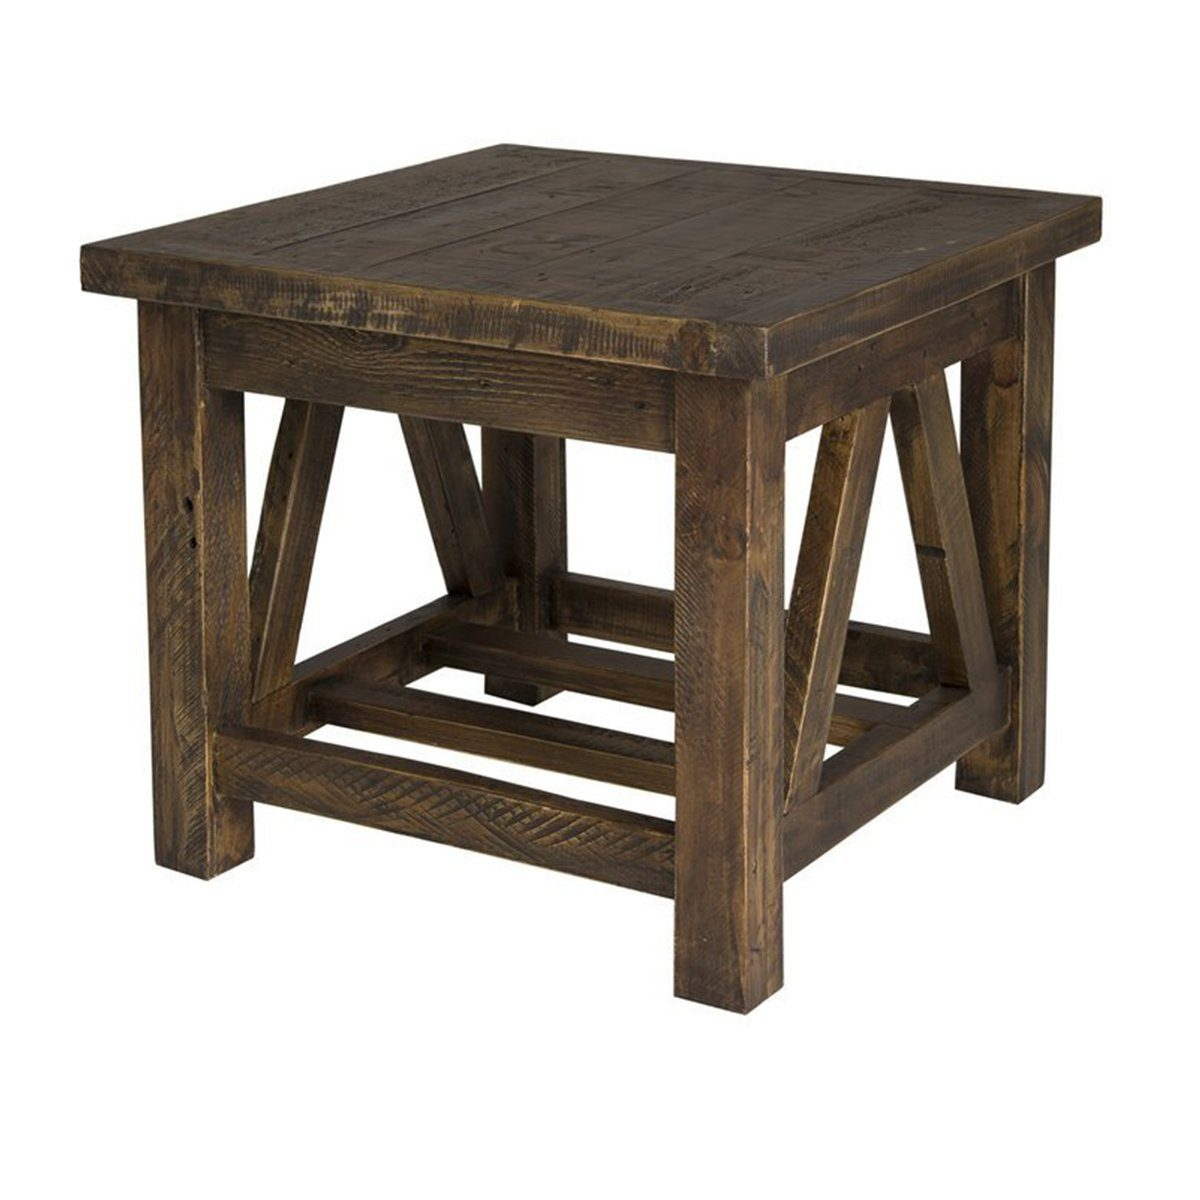 Solid Recycled Pine Wood Side Table - Smokey Brown - Showhome Furniture